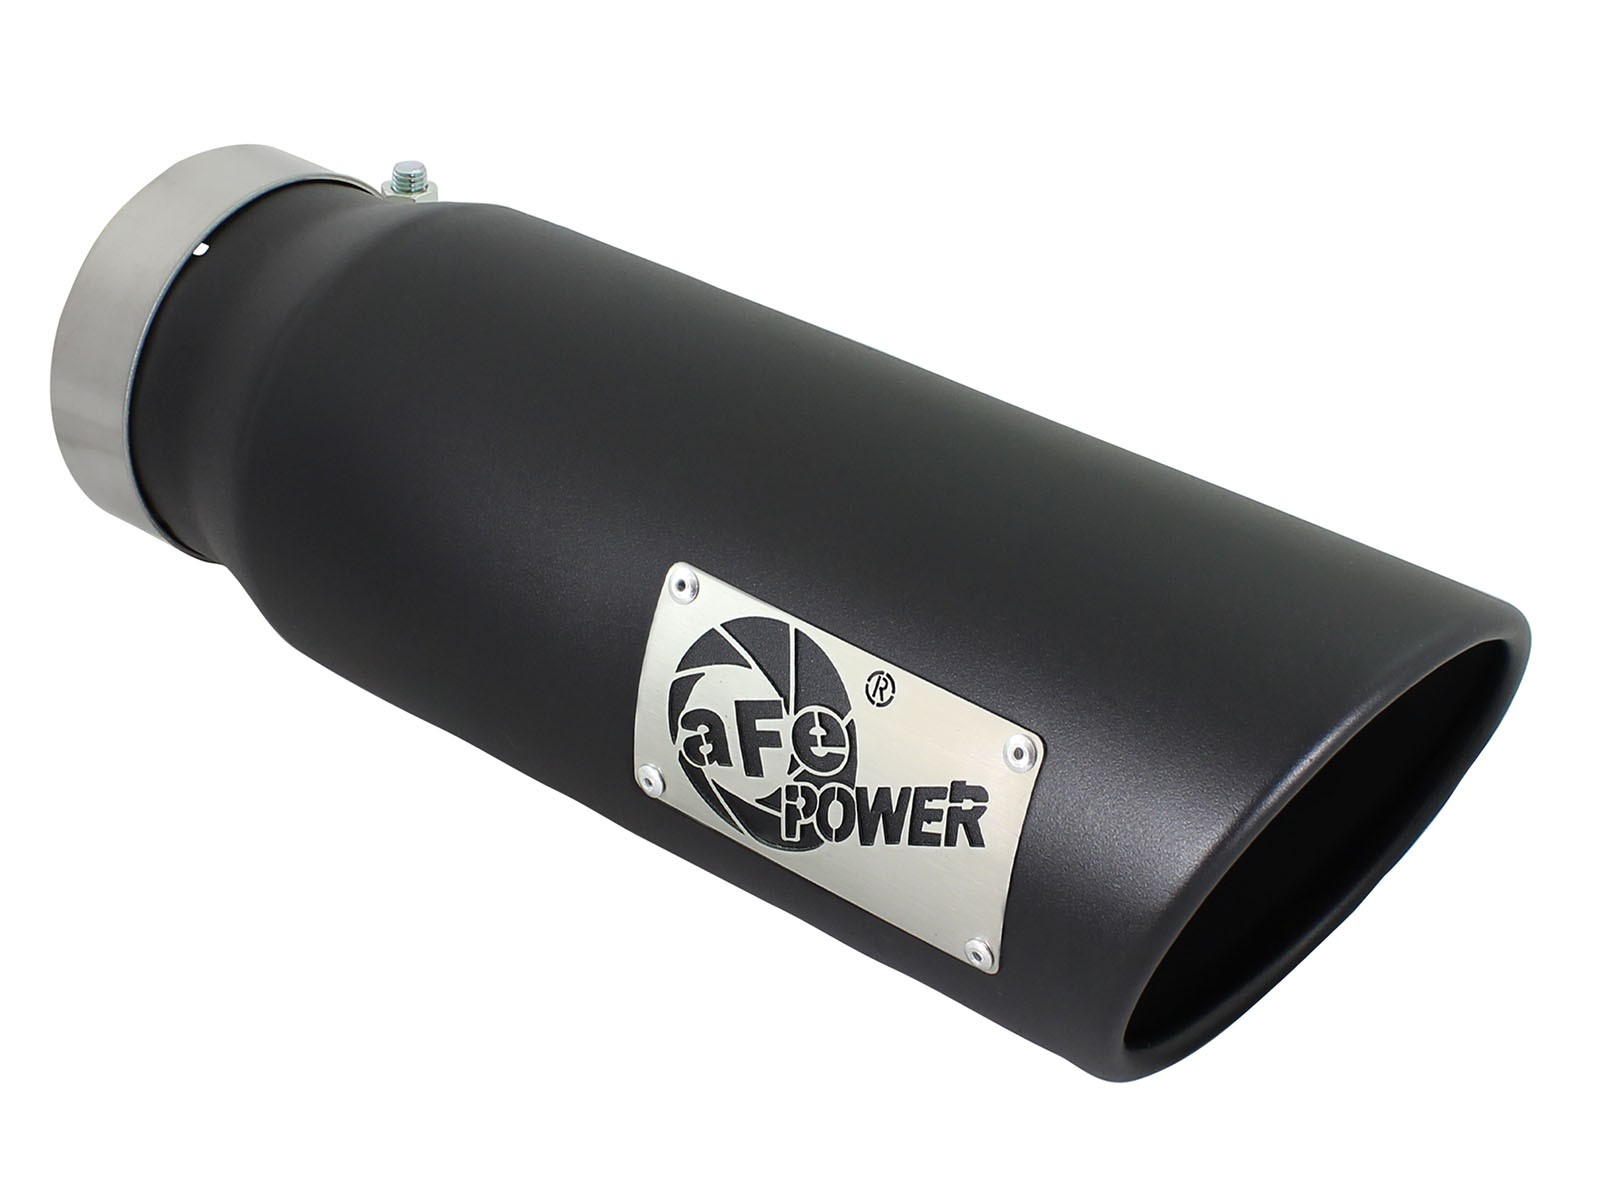 "aFe POWER 49T40501-B15 MACH Force-Xp 4"" 304 Stainless Steel Exhaust Tip"